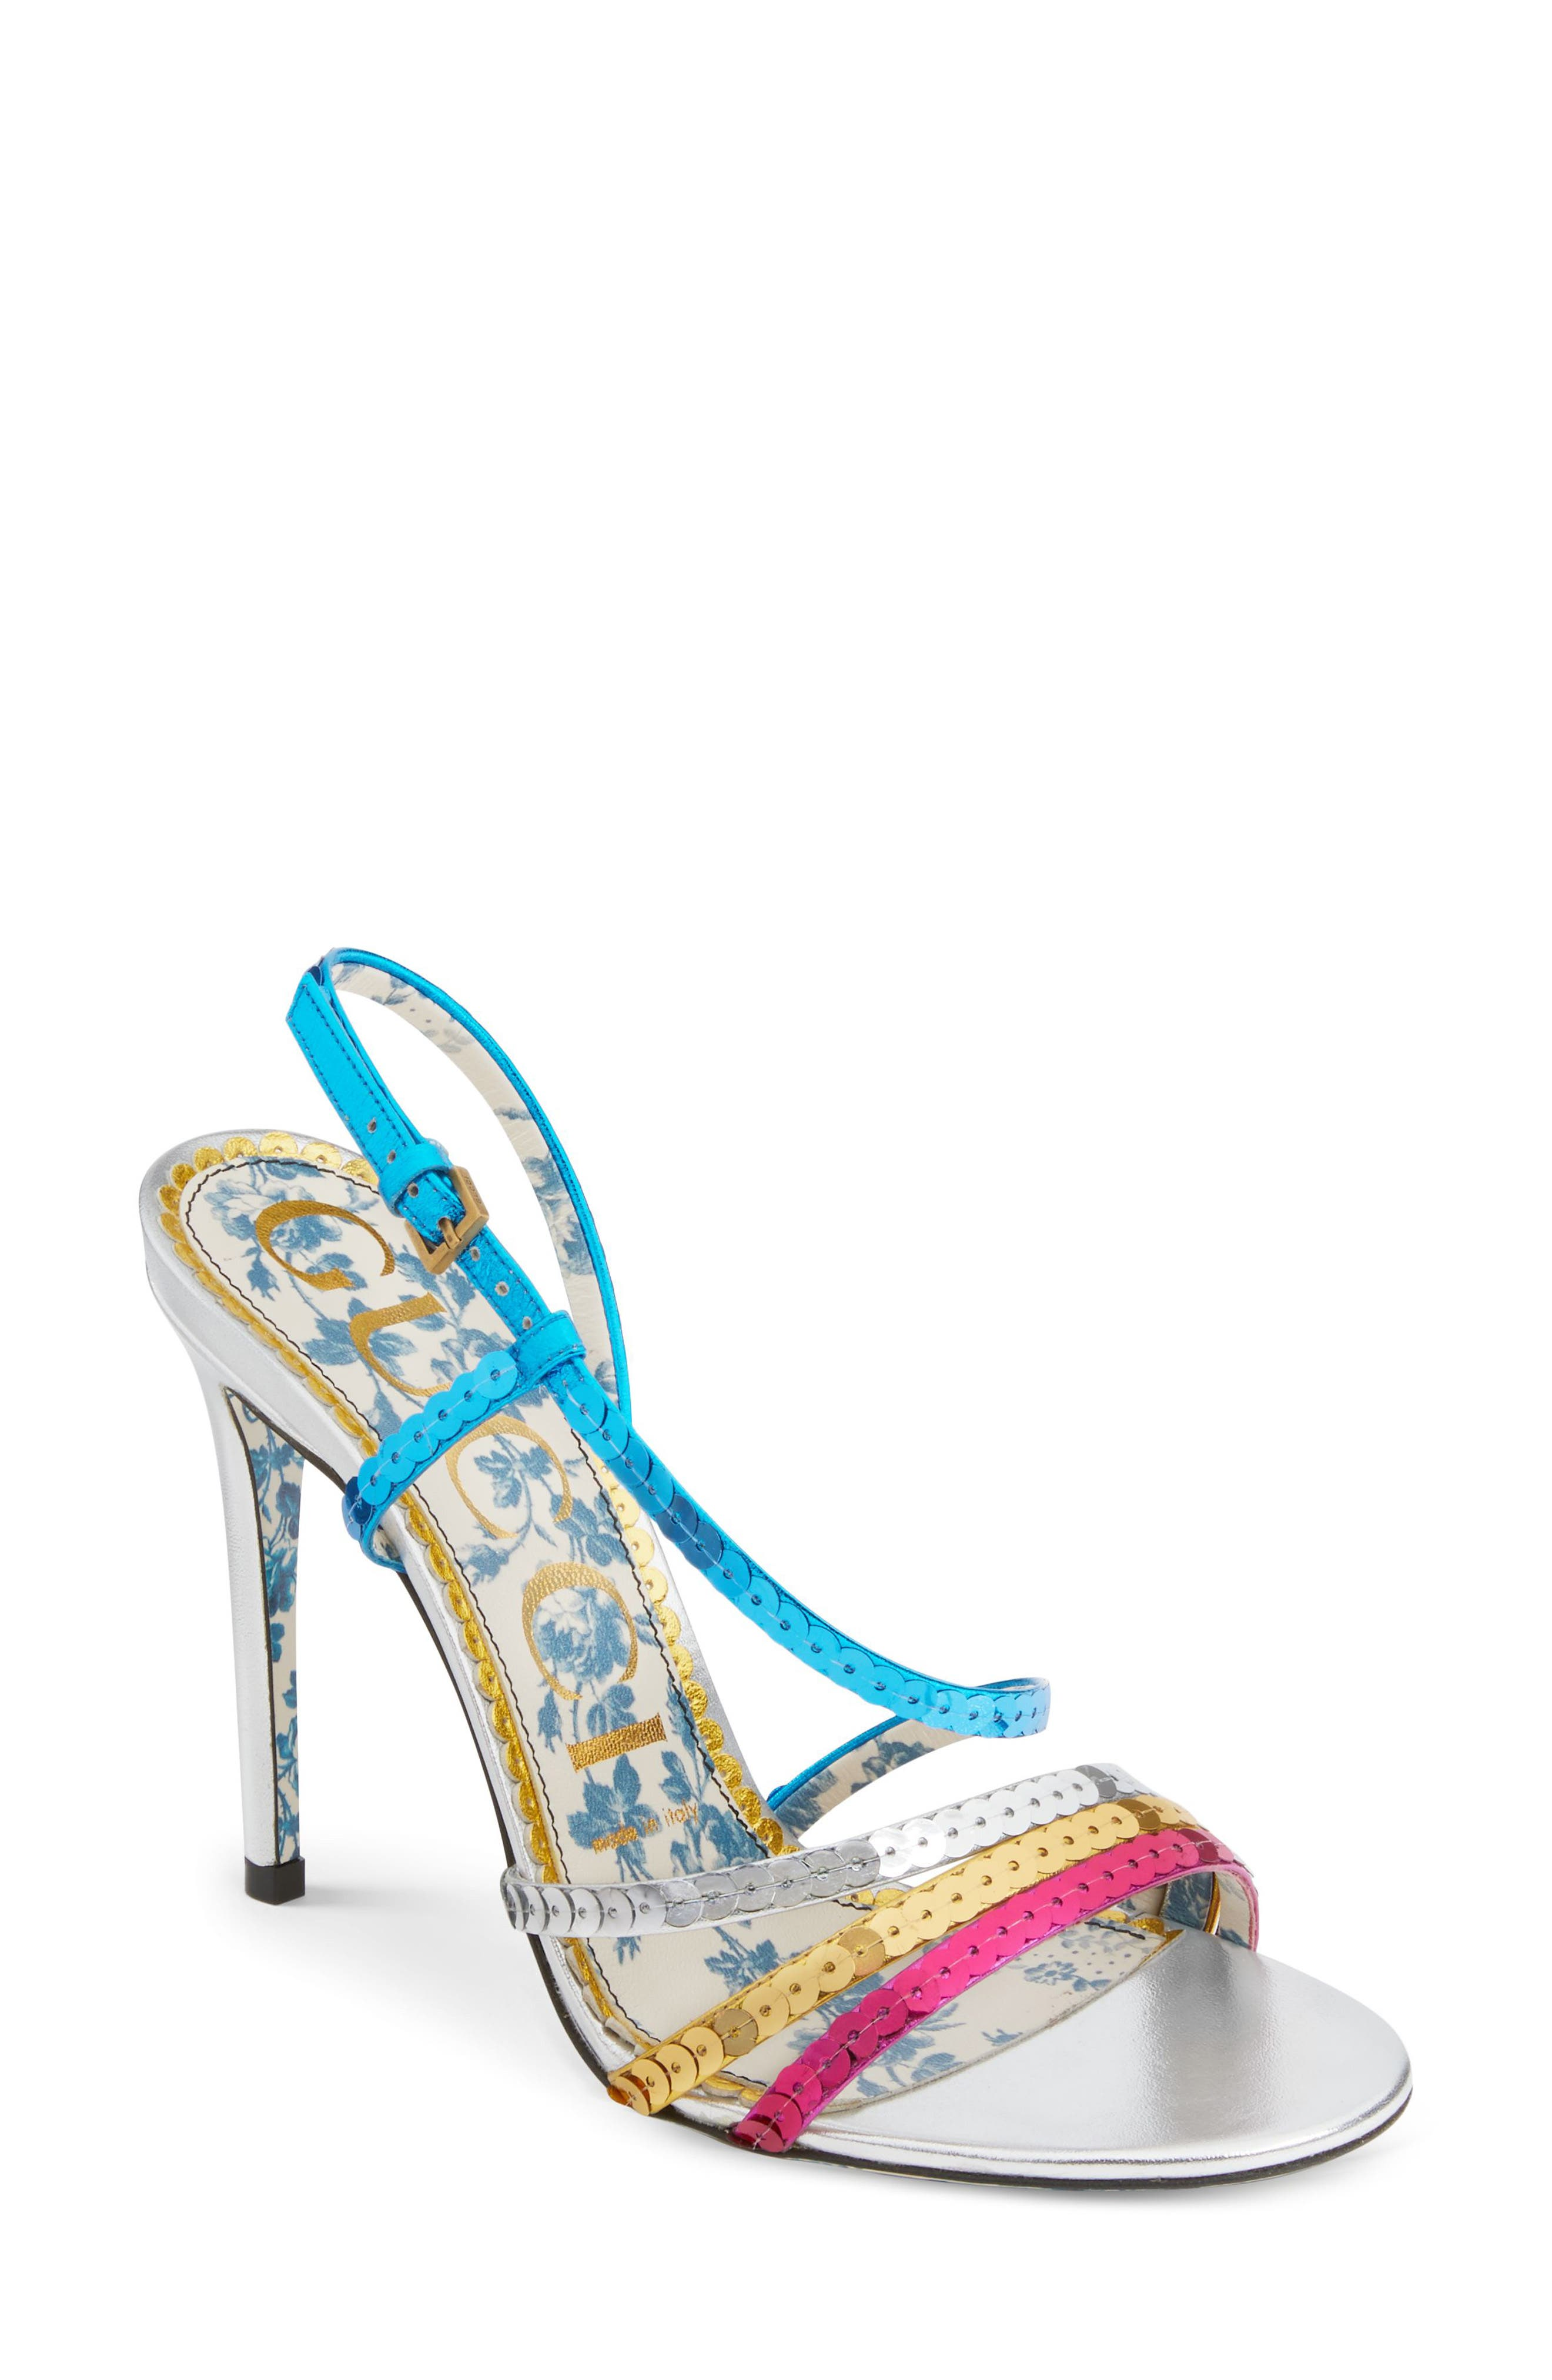 Main Image - Gucci Haines Sequin Sandal (Women)